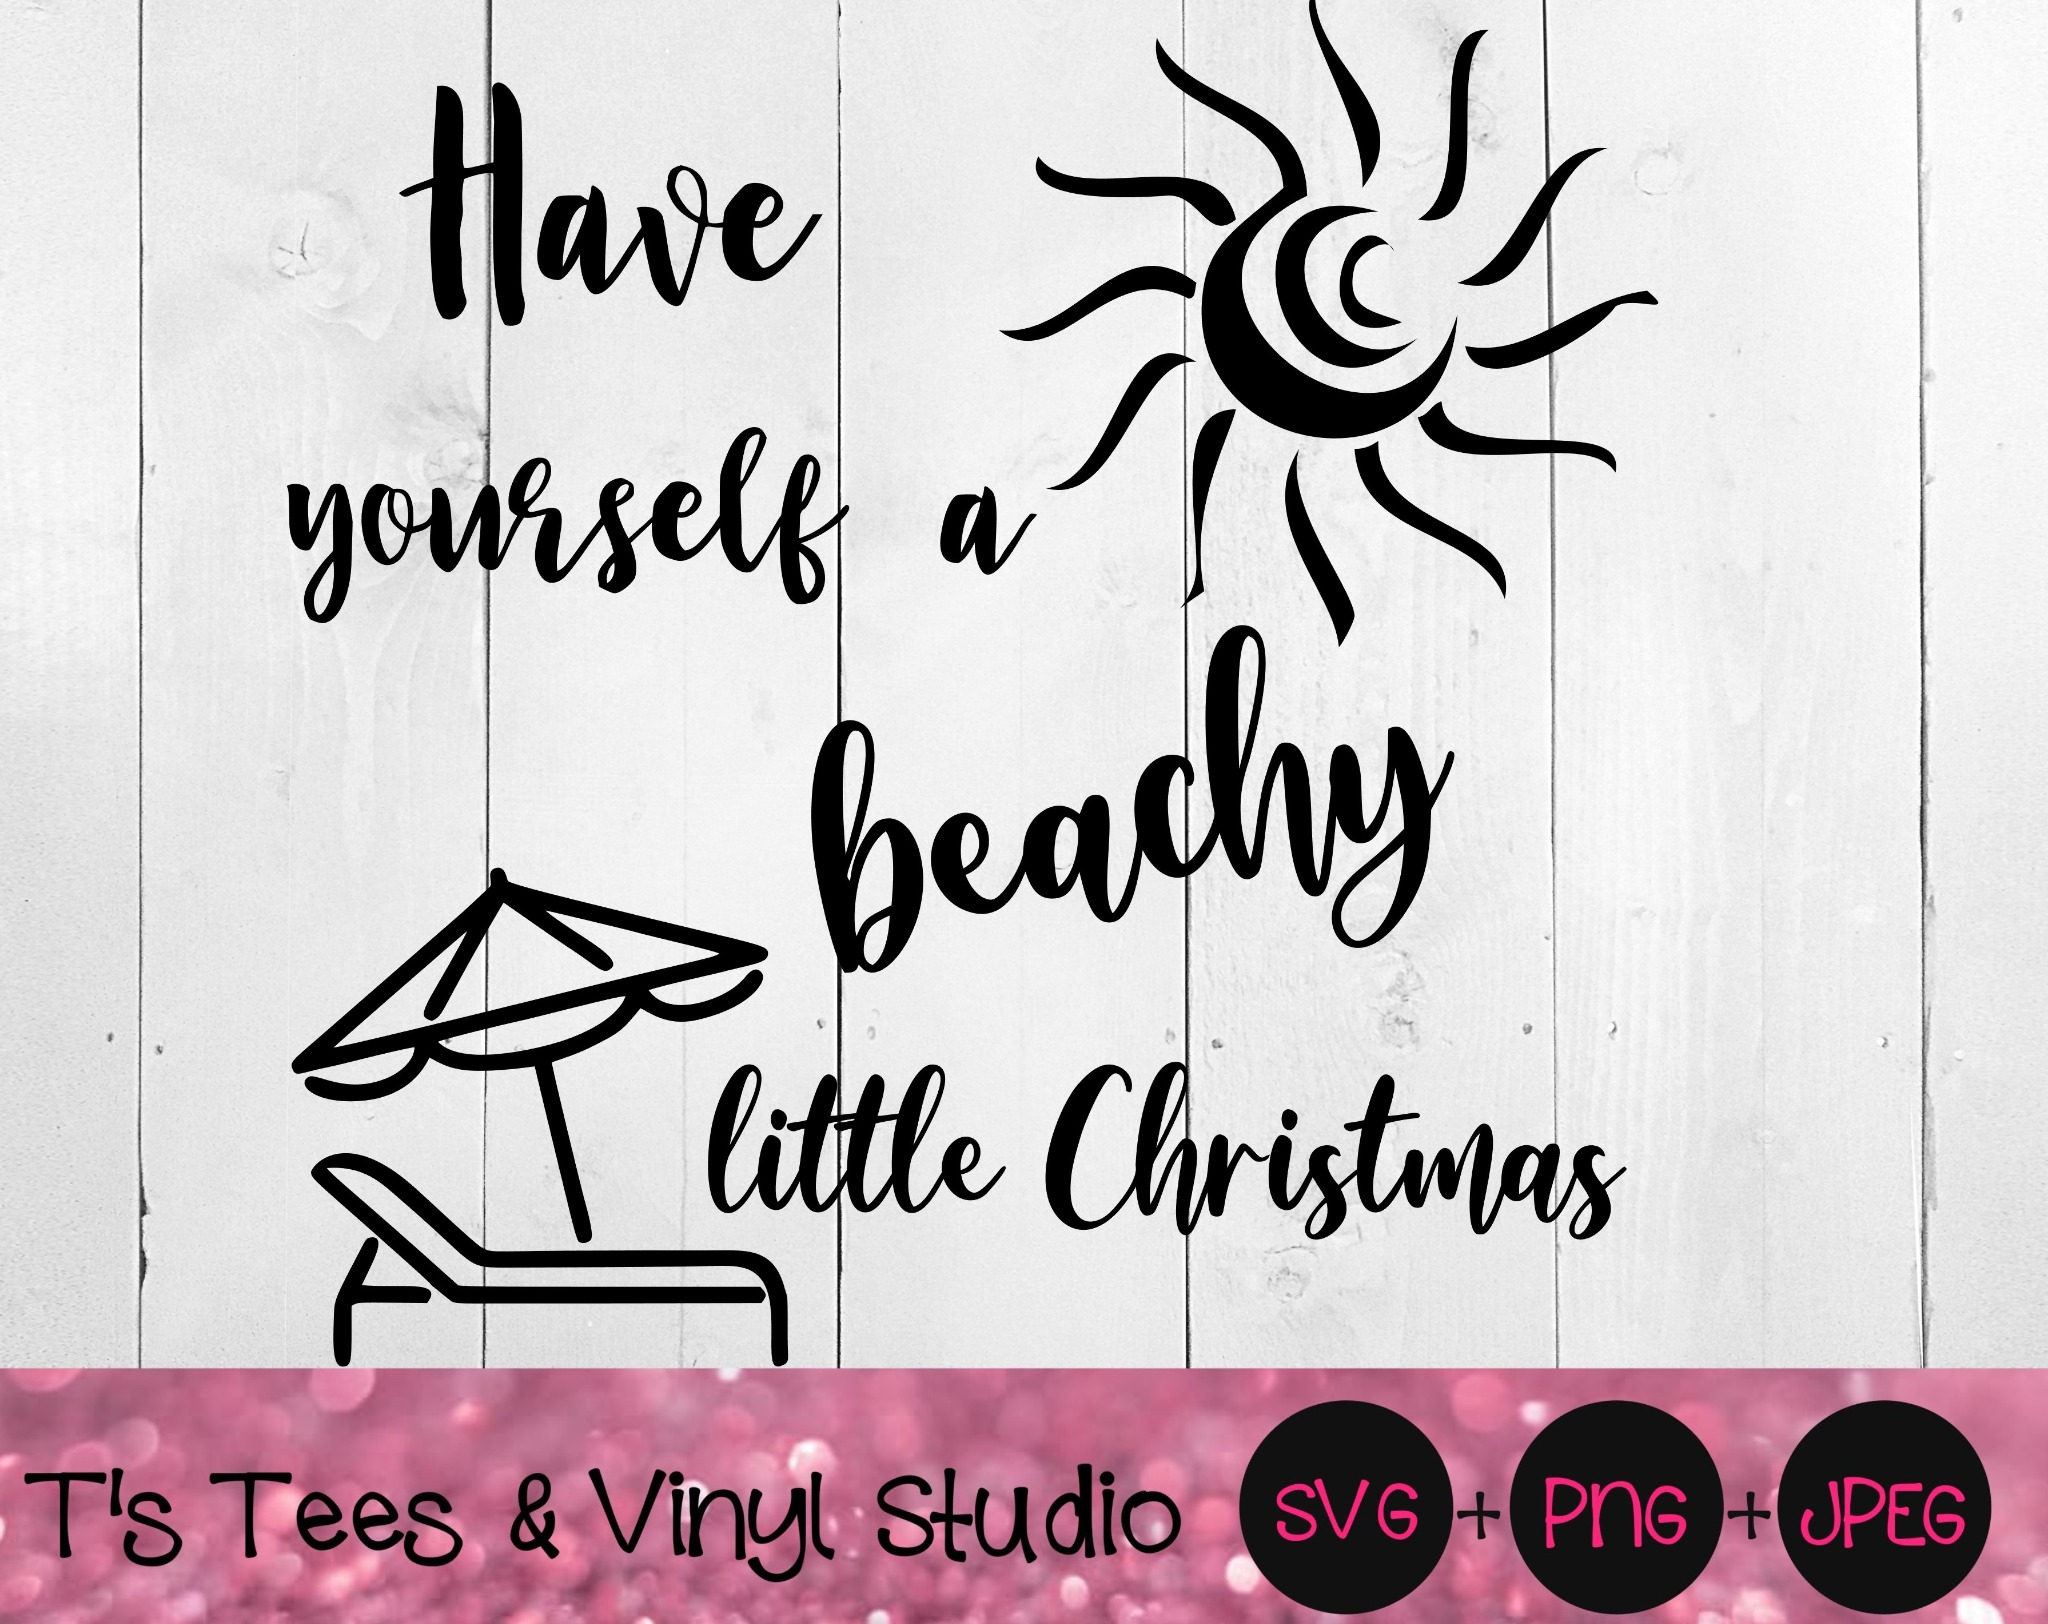 Have Yourself A Beachy Little Christmas Svg, Merry Christmas, Summer Christmas, Warm Weather, Beach,